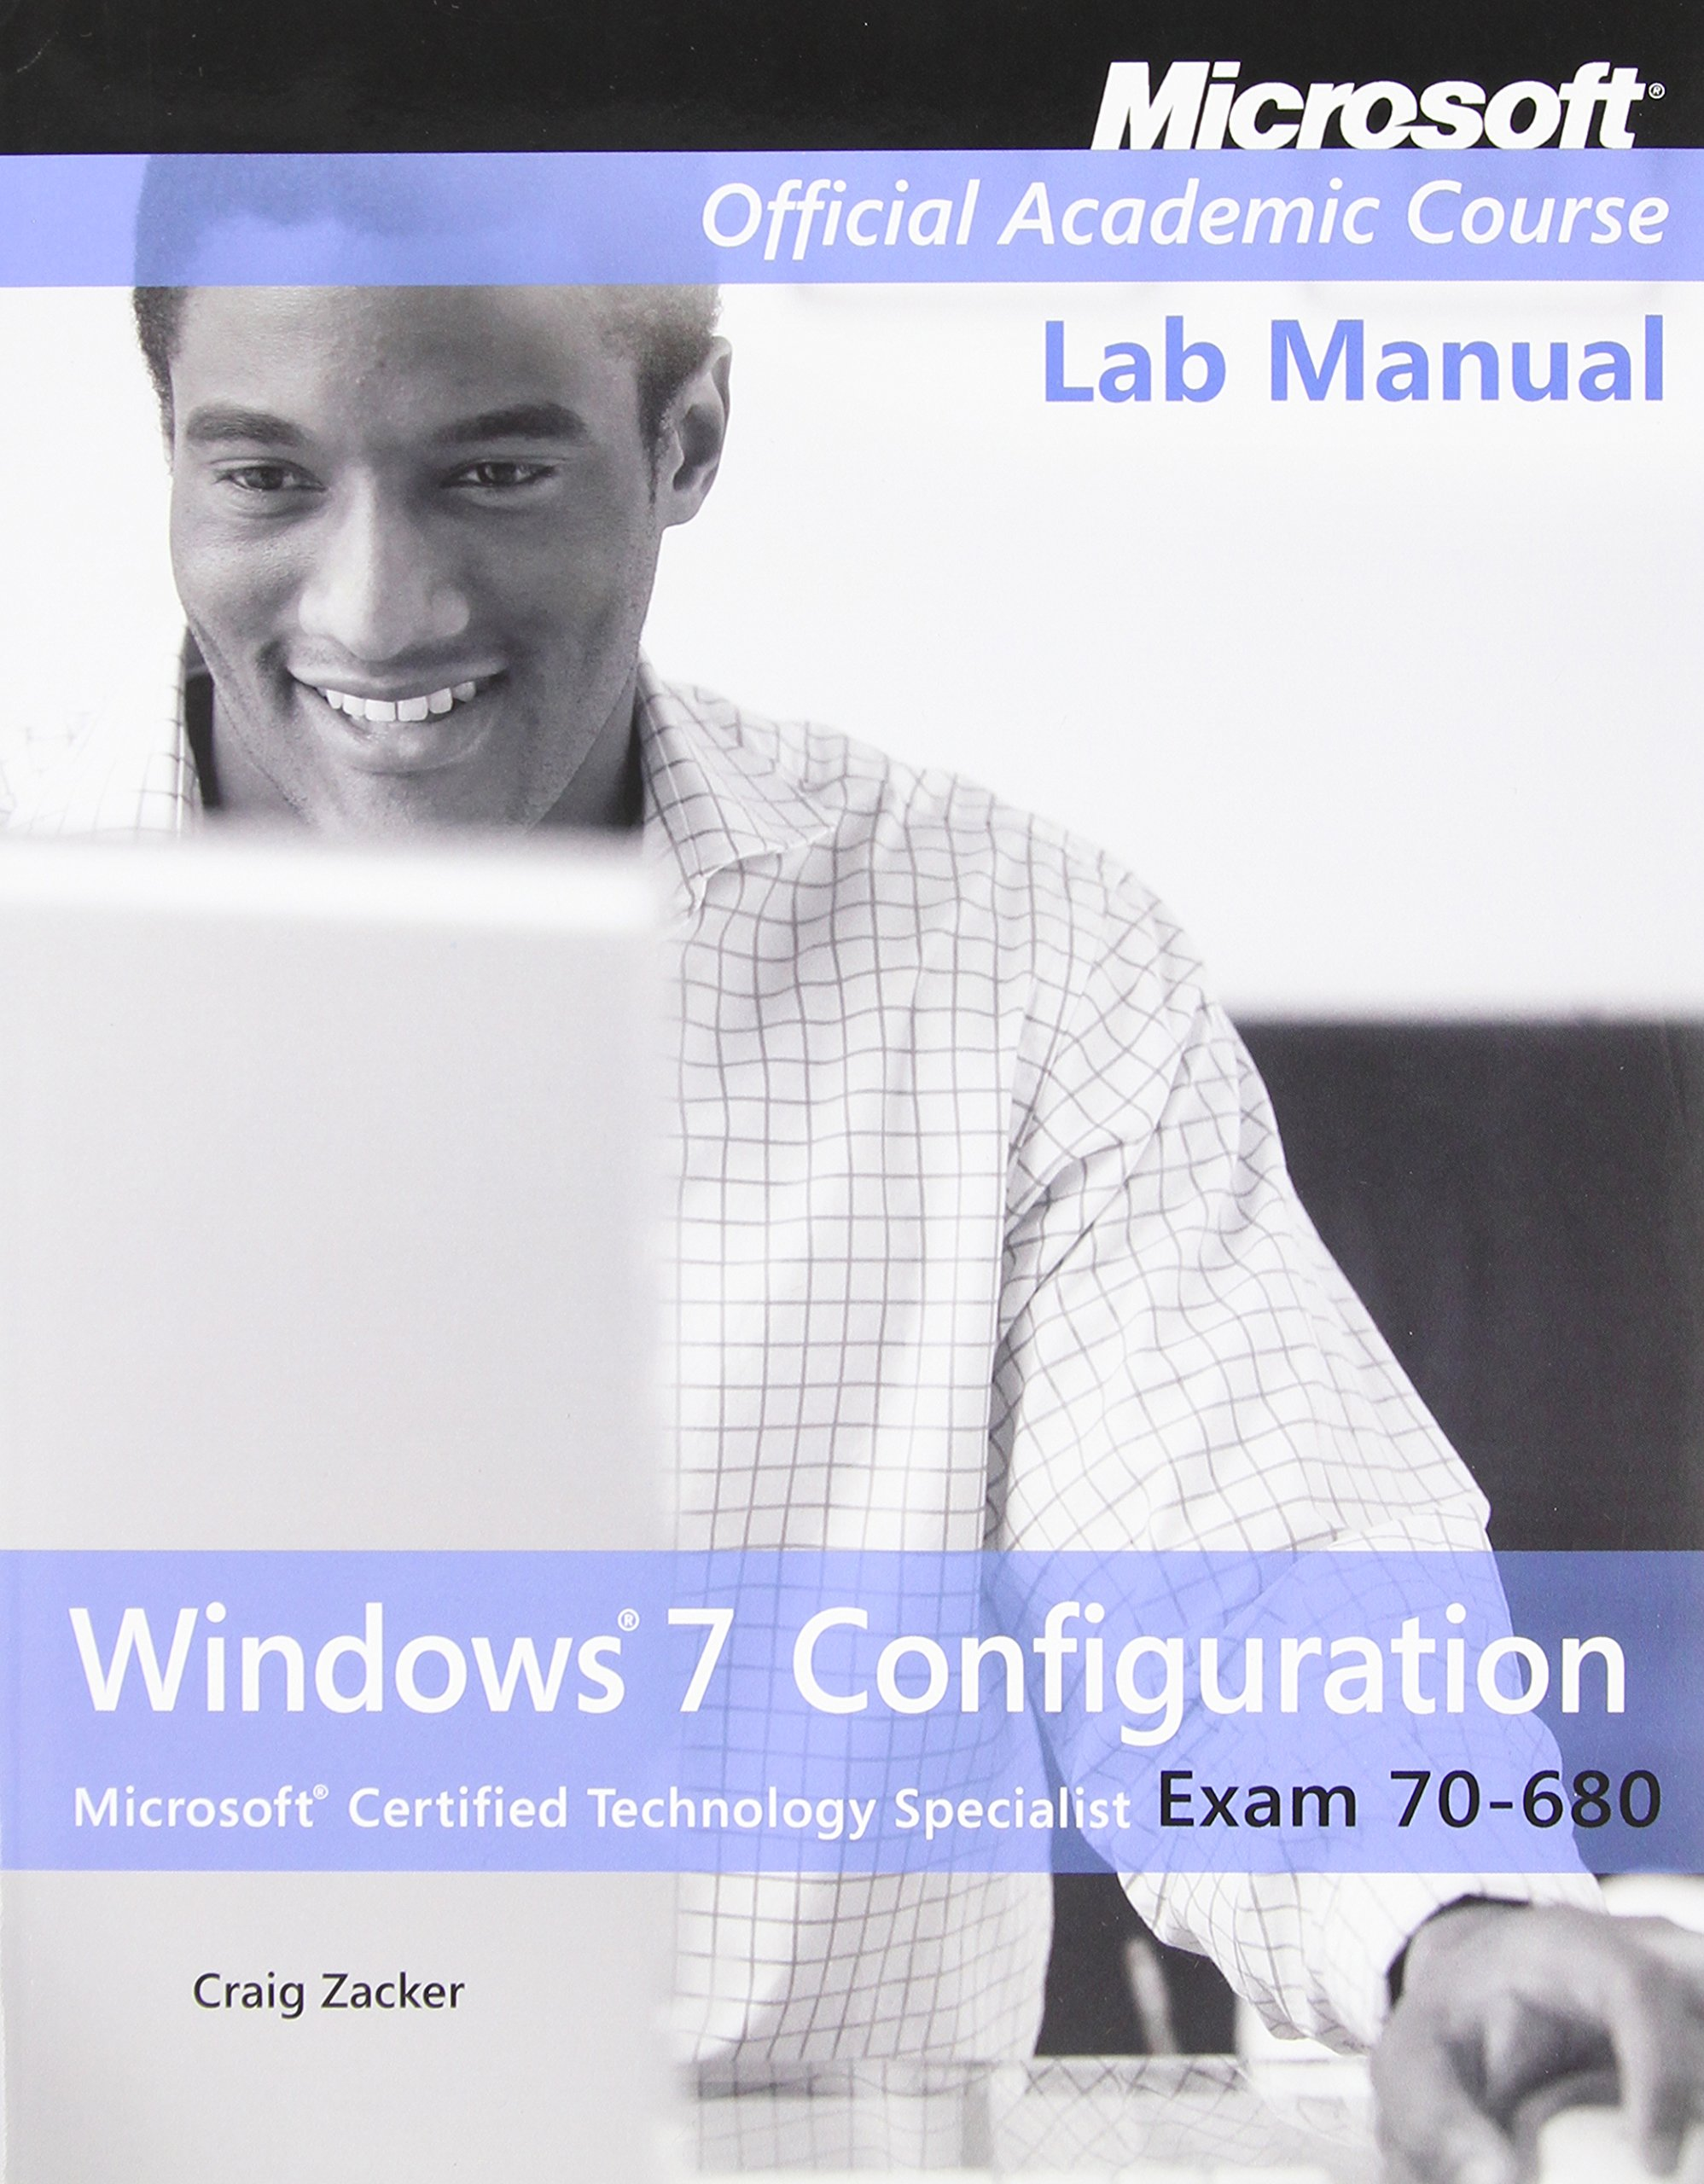 Exam 70-680: Windows 7 Configuration with Lab Manual Set: Amazon.ca:  Microsoft Official Academic Course: Books